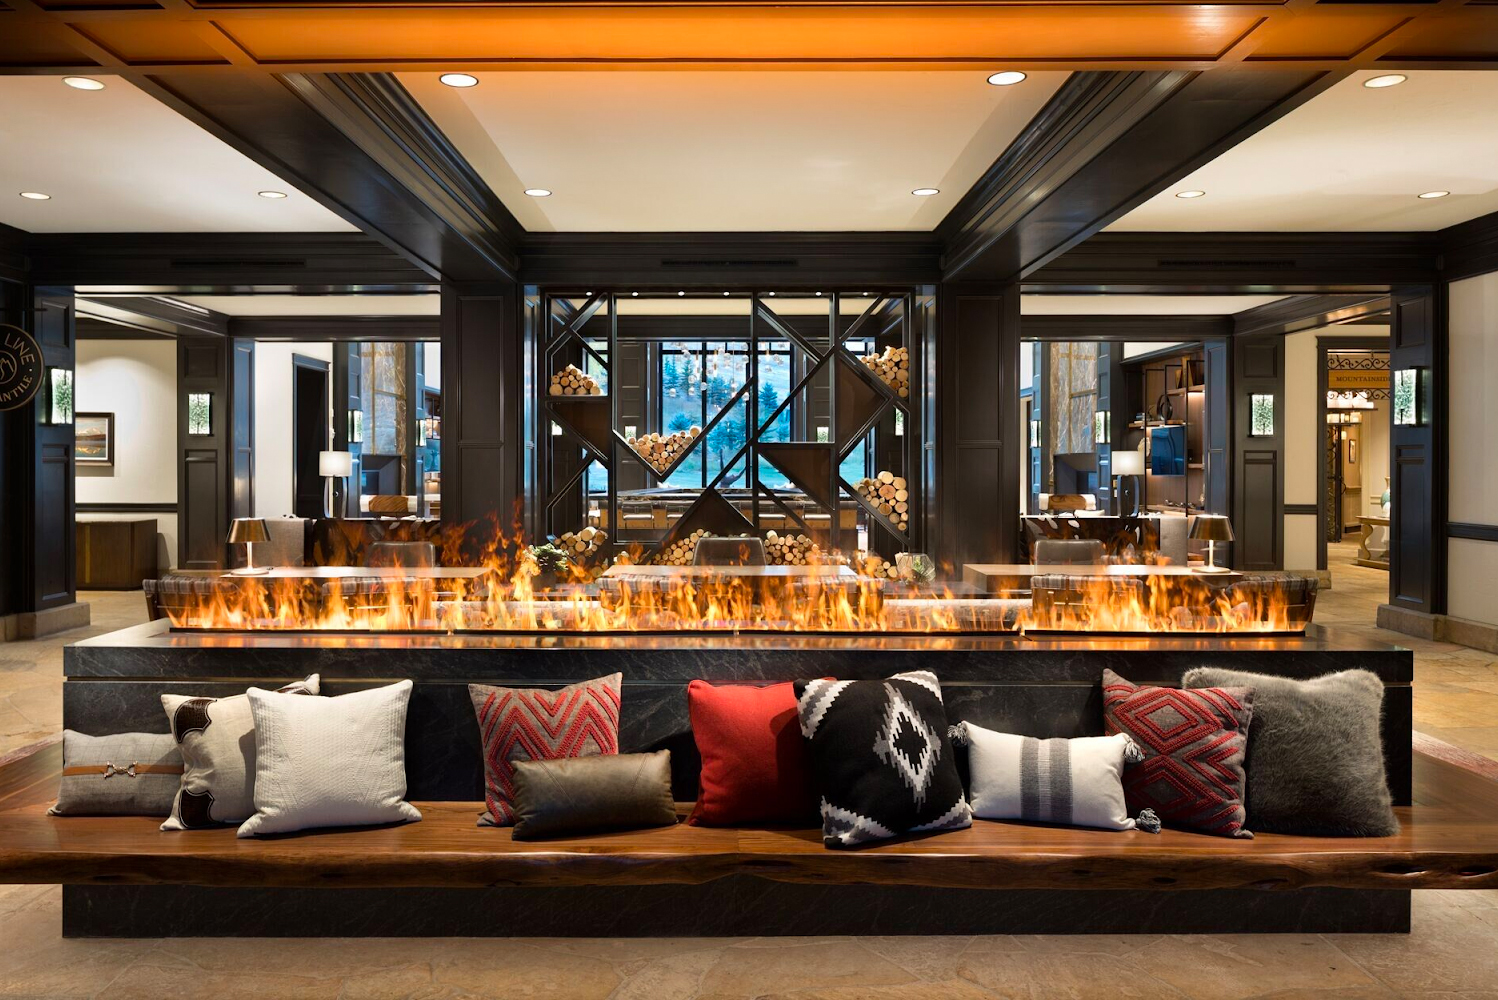 Upon entering the new lobby, guests are now met with a central, cantilevered live-edge wood bench that frames a honed-back granite fireplace.